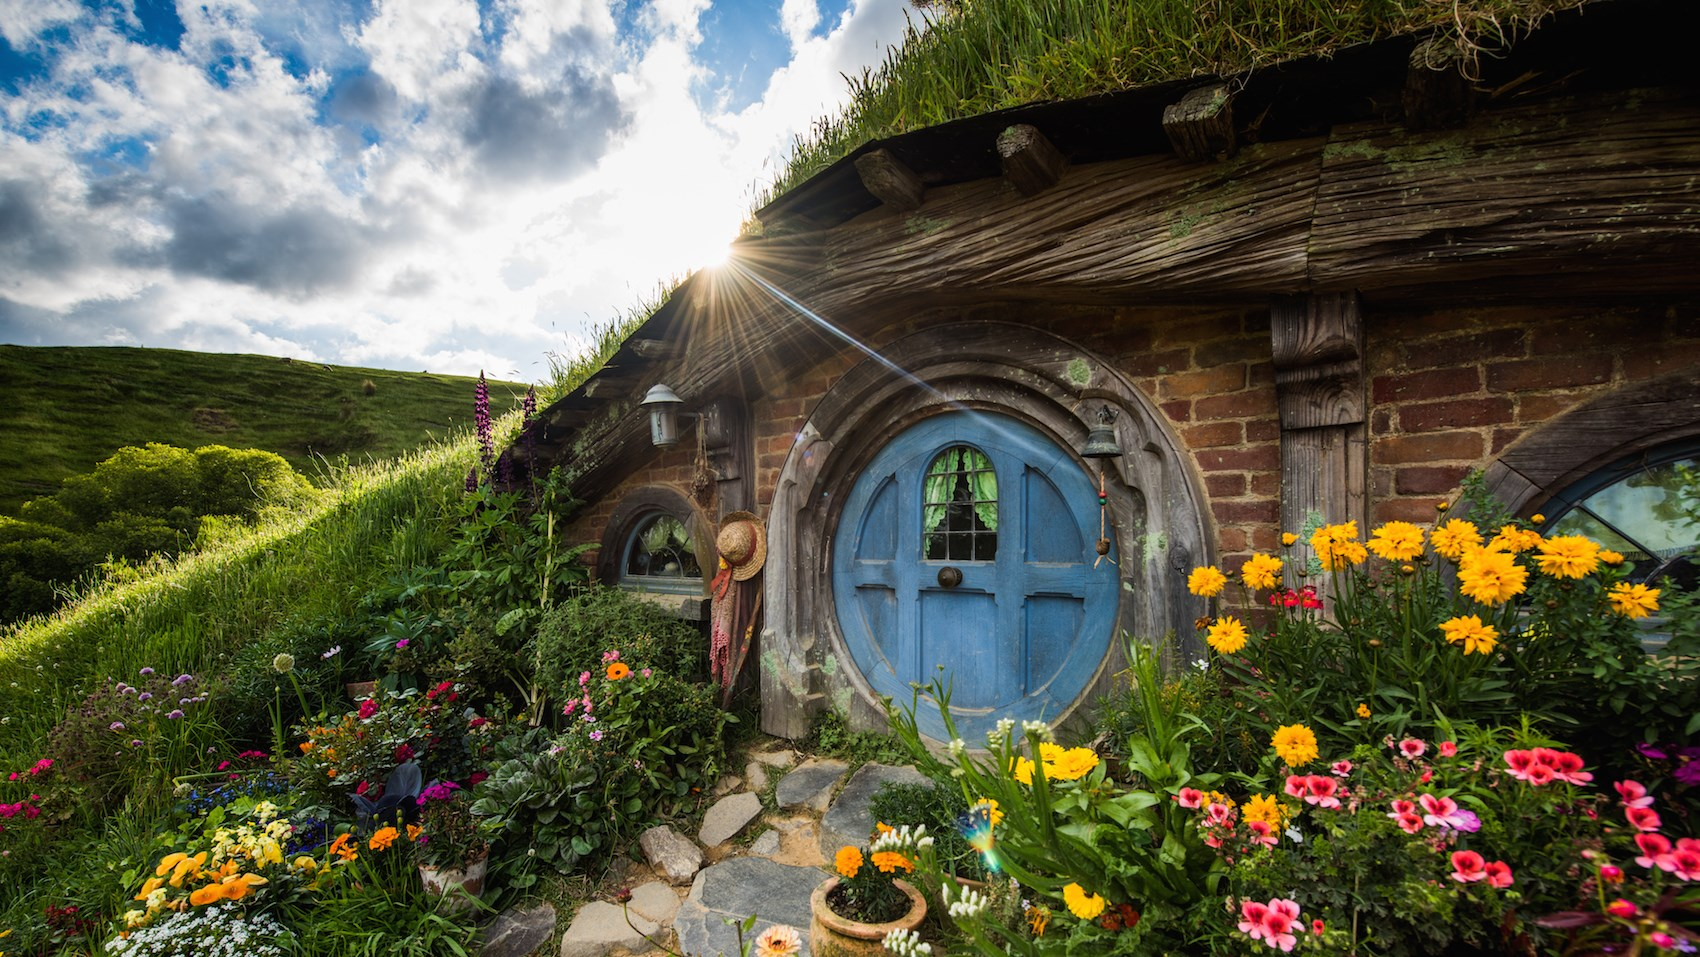 Hobbiton - Experience the magic of Hobbiton. In the heart of New Zealand, you can step into the lush pastures of the Shire™, as featured in The Lord of the Rings and The Hobbit trilogies. 40 minutes drive. More…